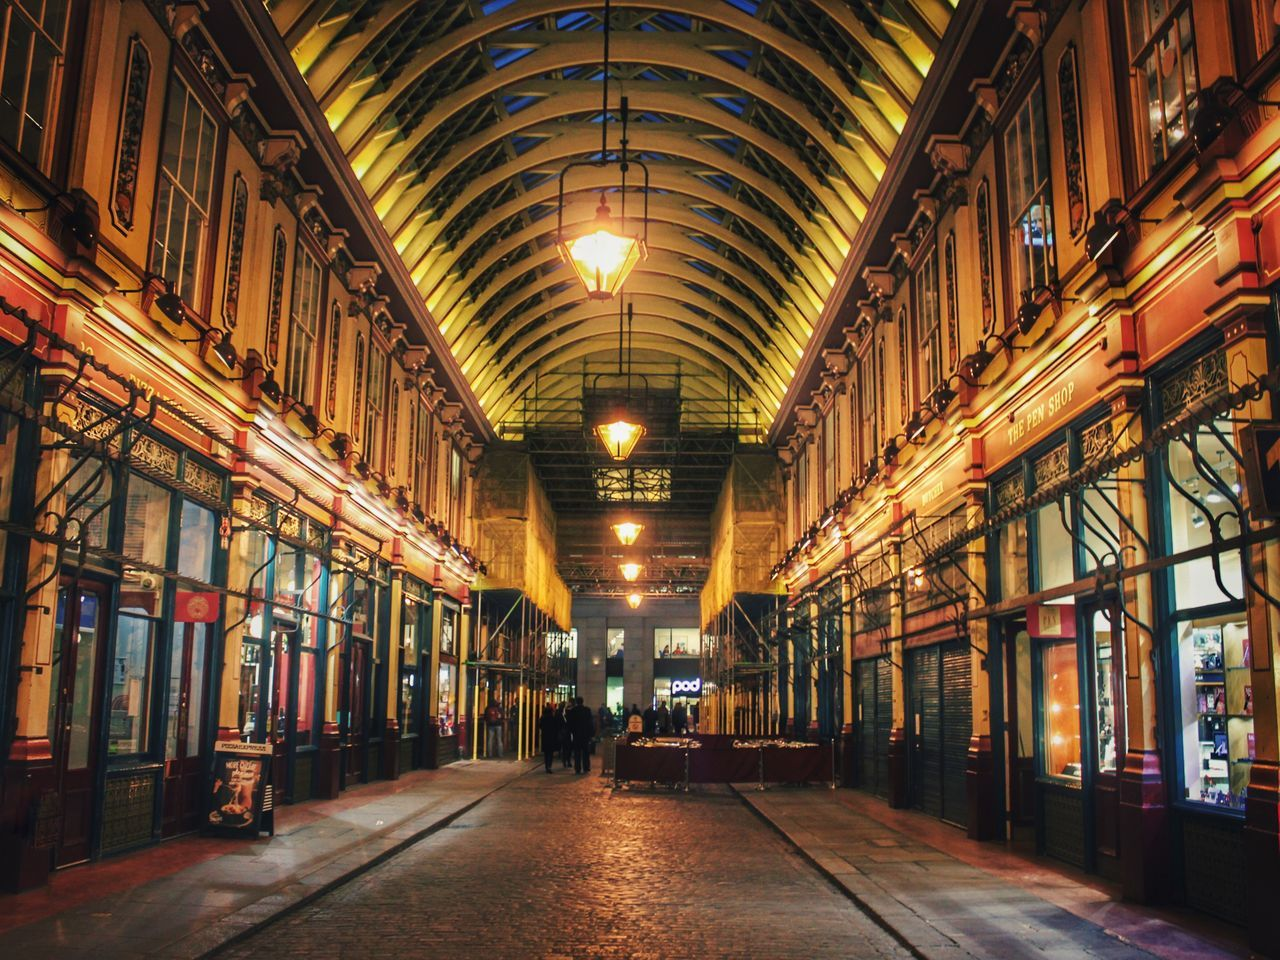 LeadenhallMarket London London Lifestyle LONDON❤ London Streets Street Streetphotography Street Photography Night Nightphotography Night Lights Night Photography Architecture Illuminated Indoors  Eye4photography  From My Point Of View Light And Shadow Vanishing Point EyeEm London Urban Lifestyle Urban Exploration EyeEm Best Shots EyeEm Masterclass Urban Landscape